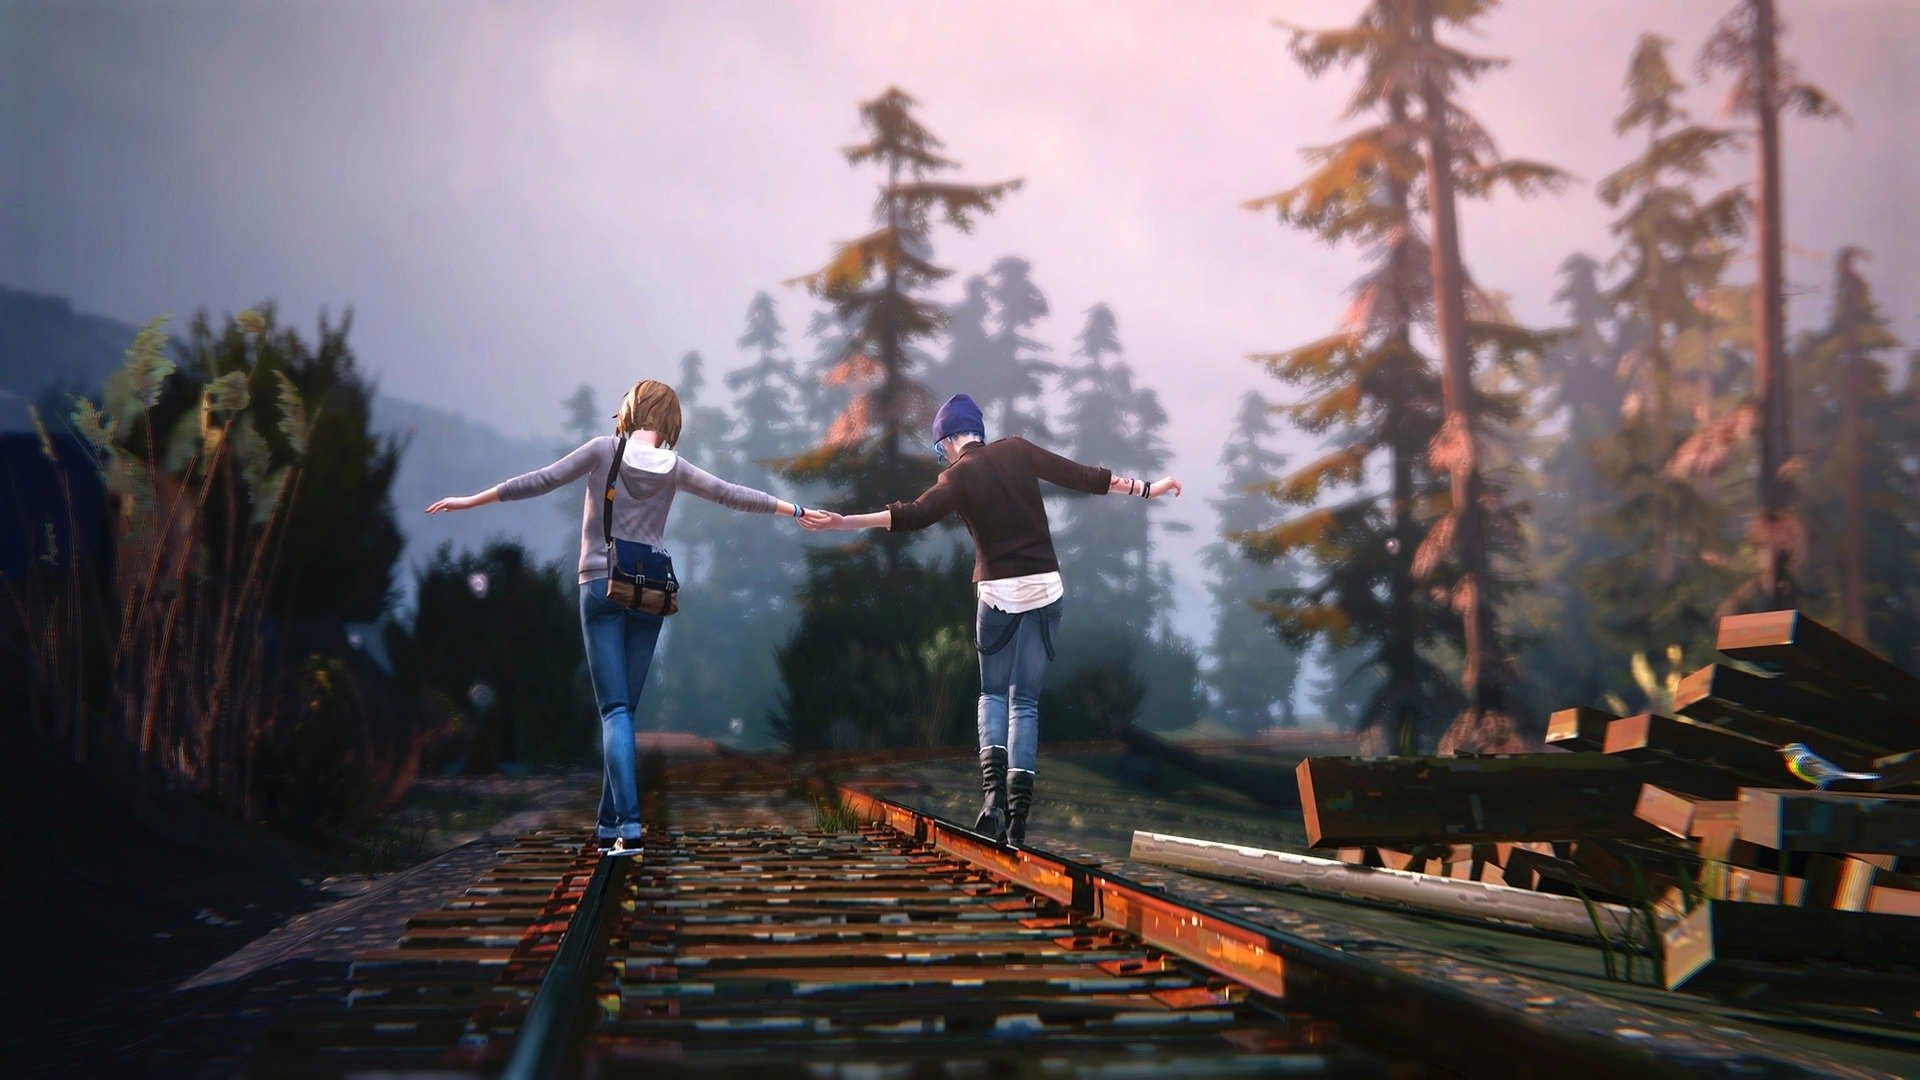 10 Best Life Is Strange Wallpapers Full Hd 1080p For Pc Desktop In 2020 Life Is Strange Wallpaper Life Is Strange Life Is Strange Episodes